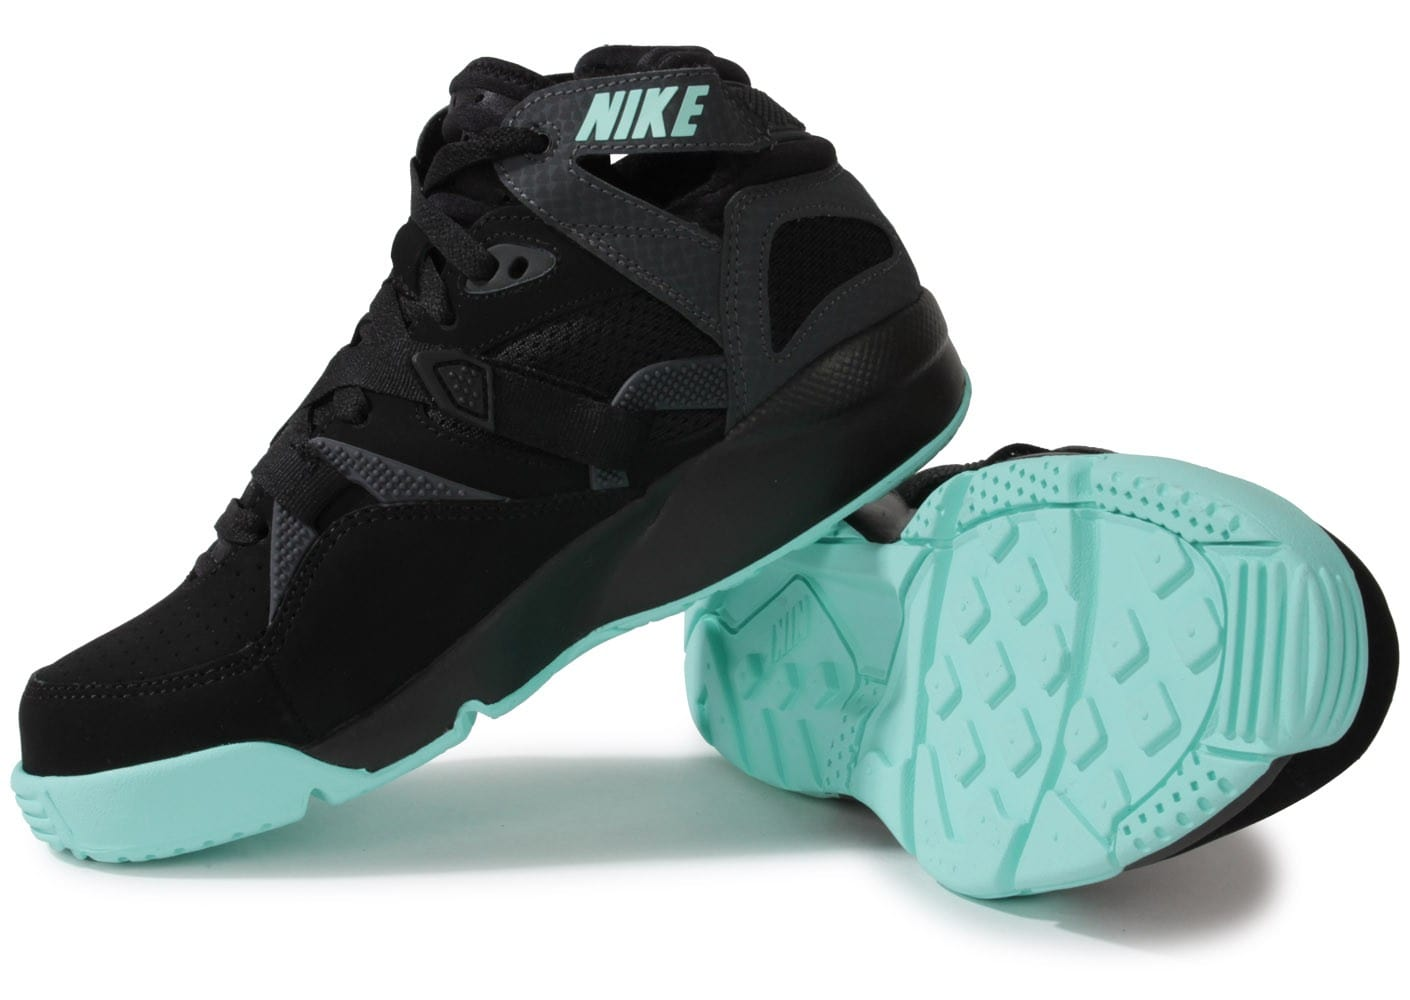 ... Chaussures Nike Air Trainer Max 91 Black Turquoise vue intérieure ... d9dfb24be06a